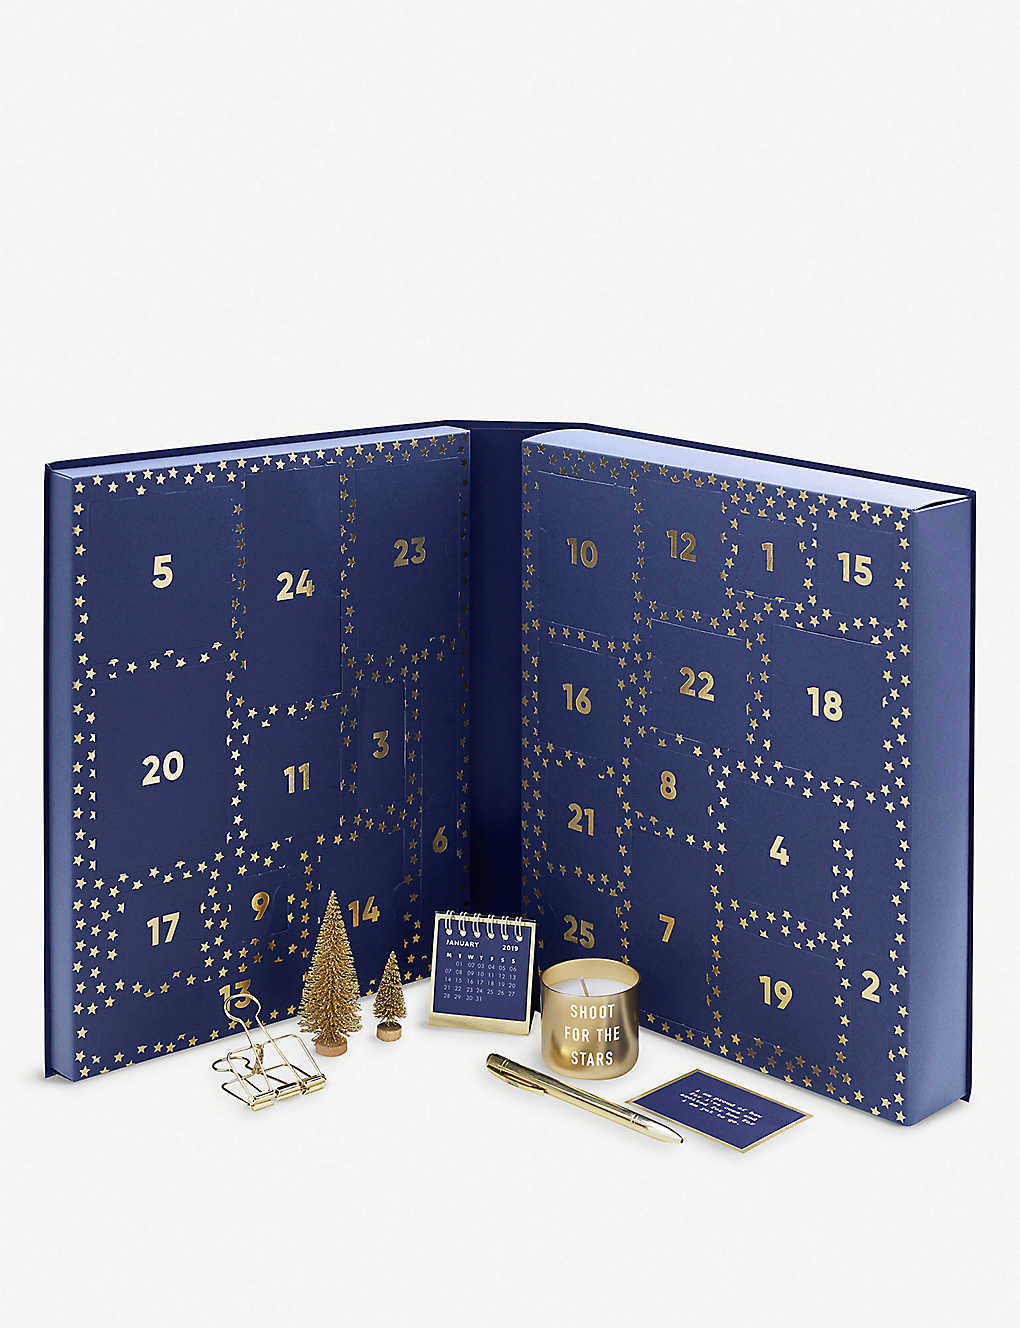 KIKKI.K Stationery Lover's advent calendar